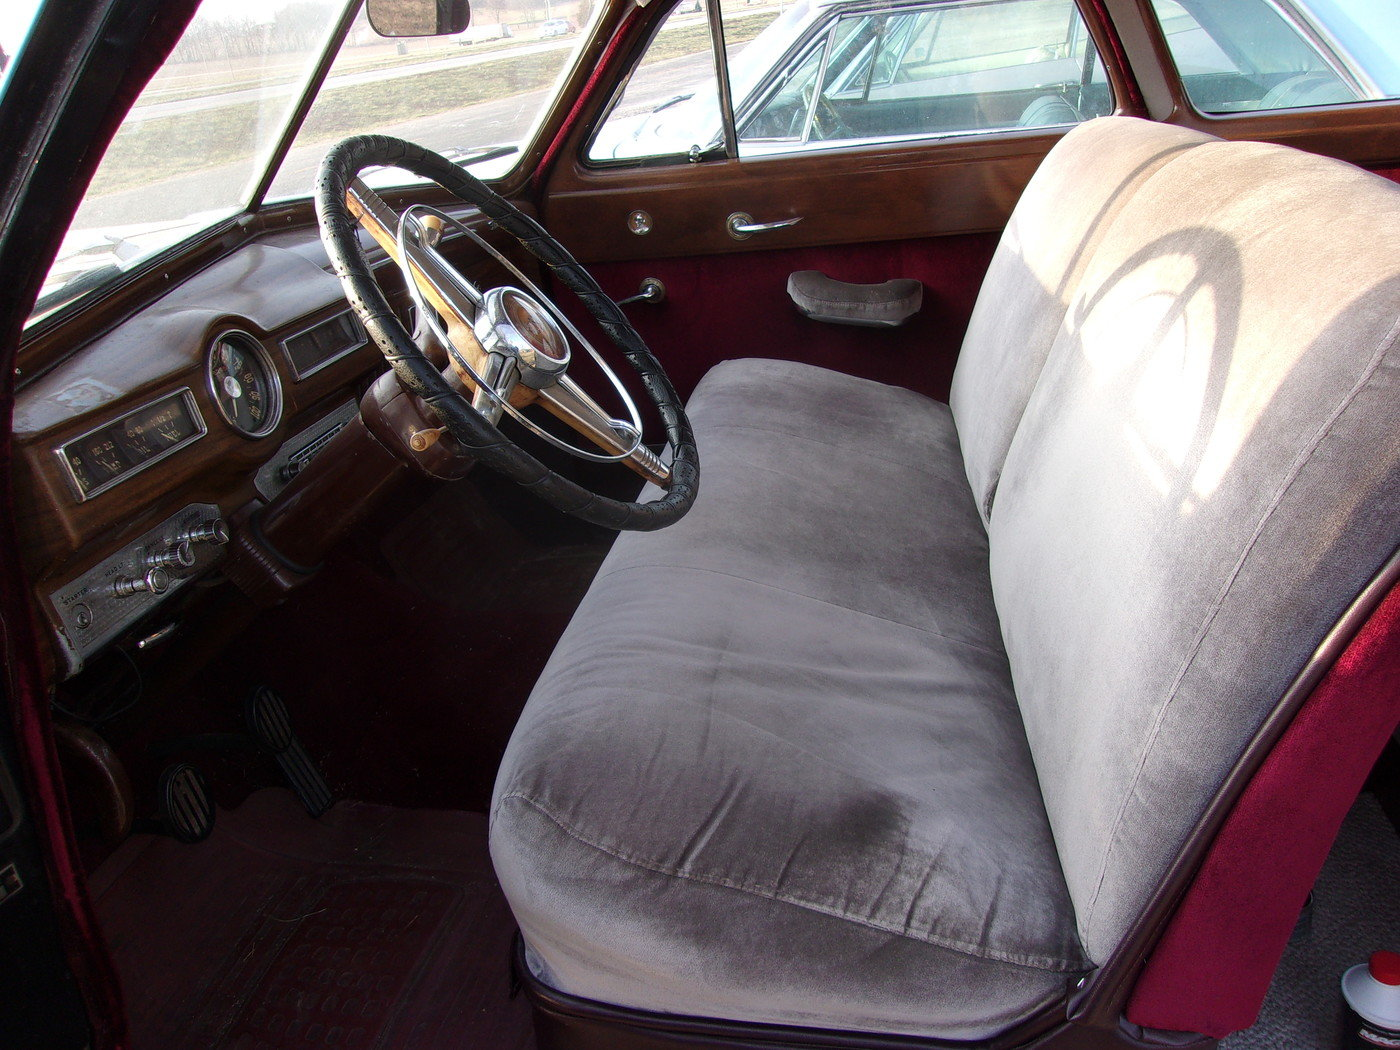 1949 DeSoto Deluxe Club Coupe For Sale (picture 6 of 12)